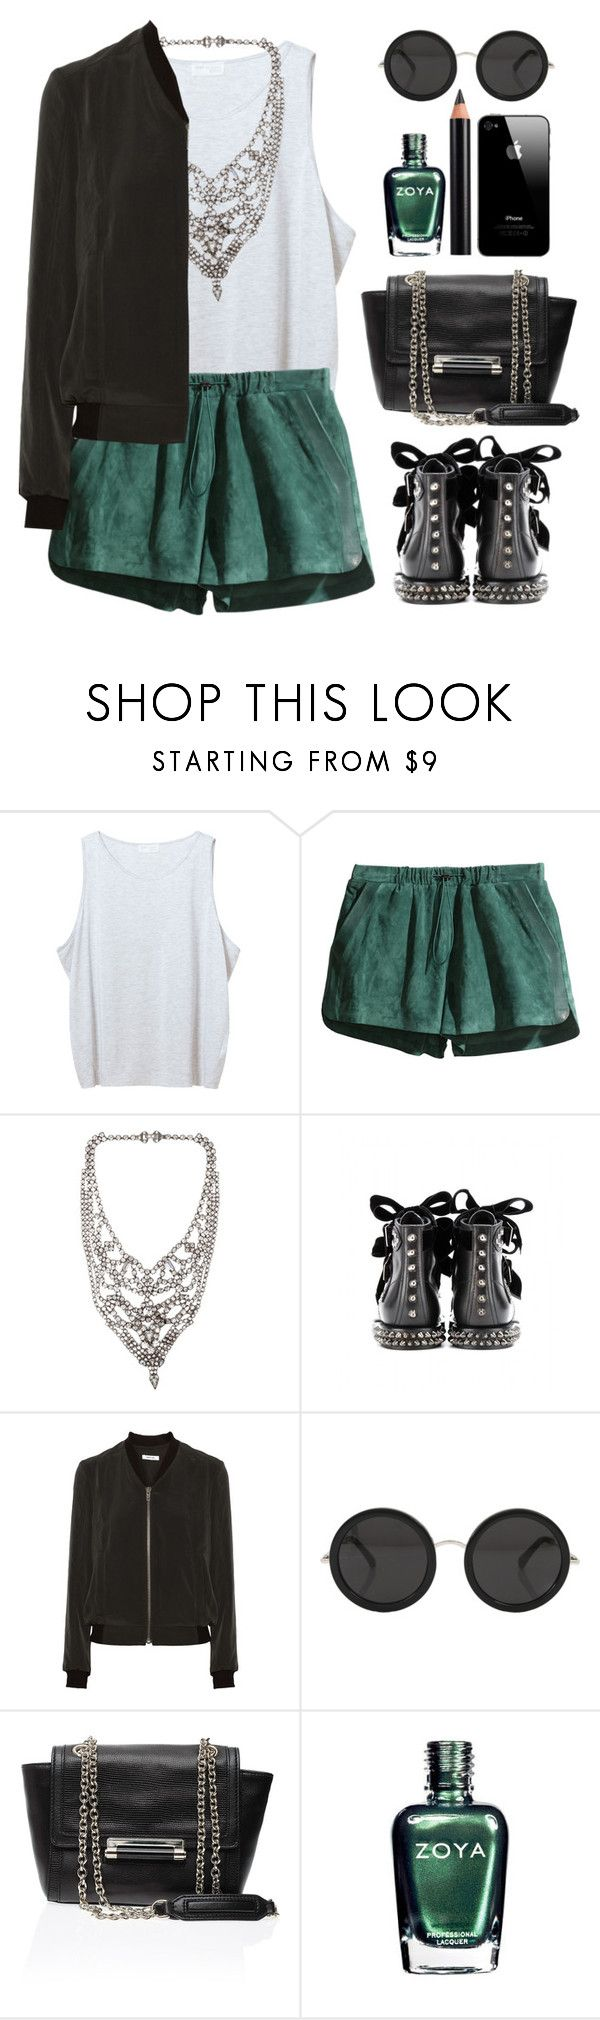 """Studs"" by endimanche ❤ liked on Polyvore featuring Zara, H&M, Tom Binns, Yves Saint Laurent, Helmut Lang, The Row, Diane Von Furstenberg, Zoya and Clarins"